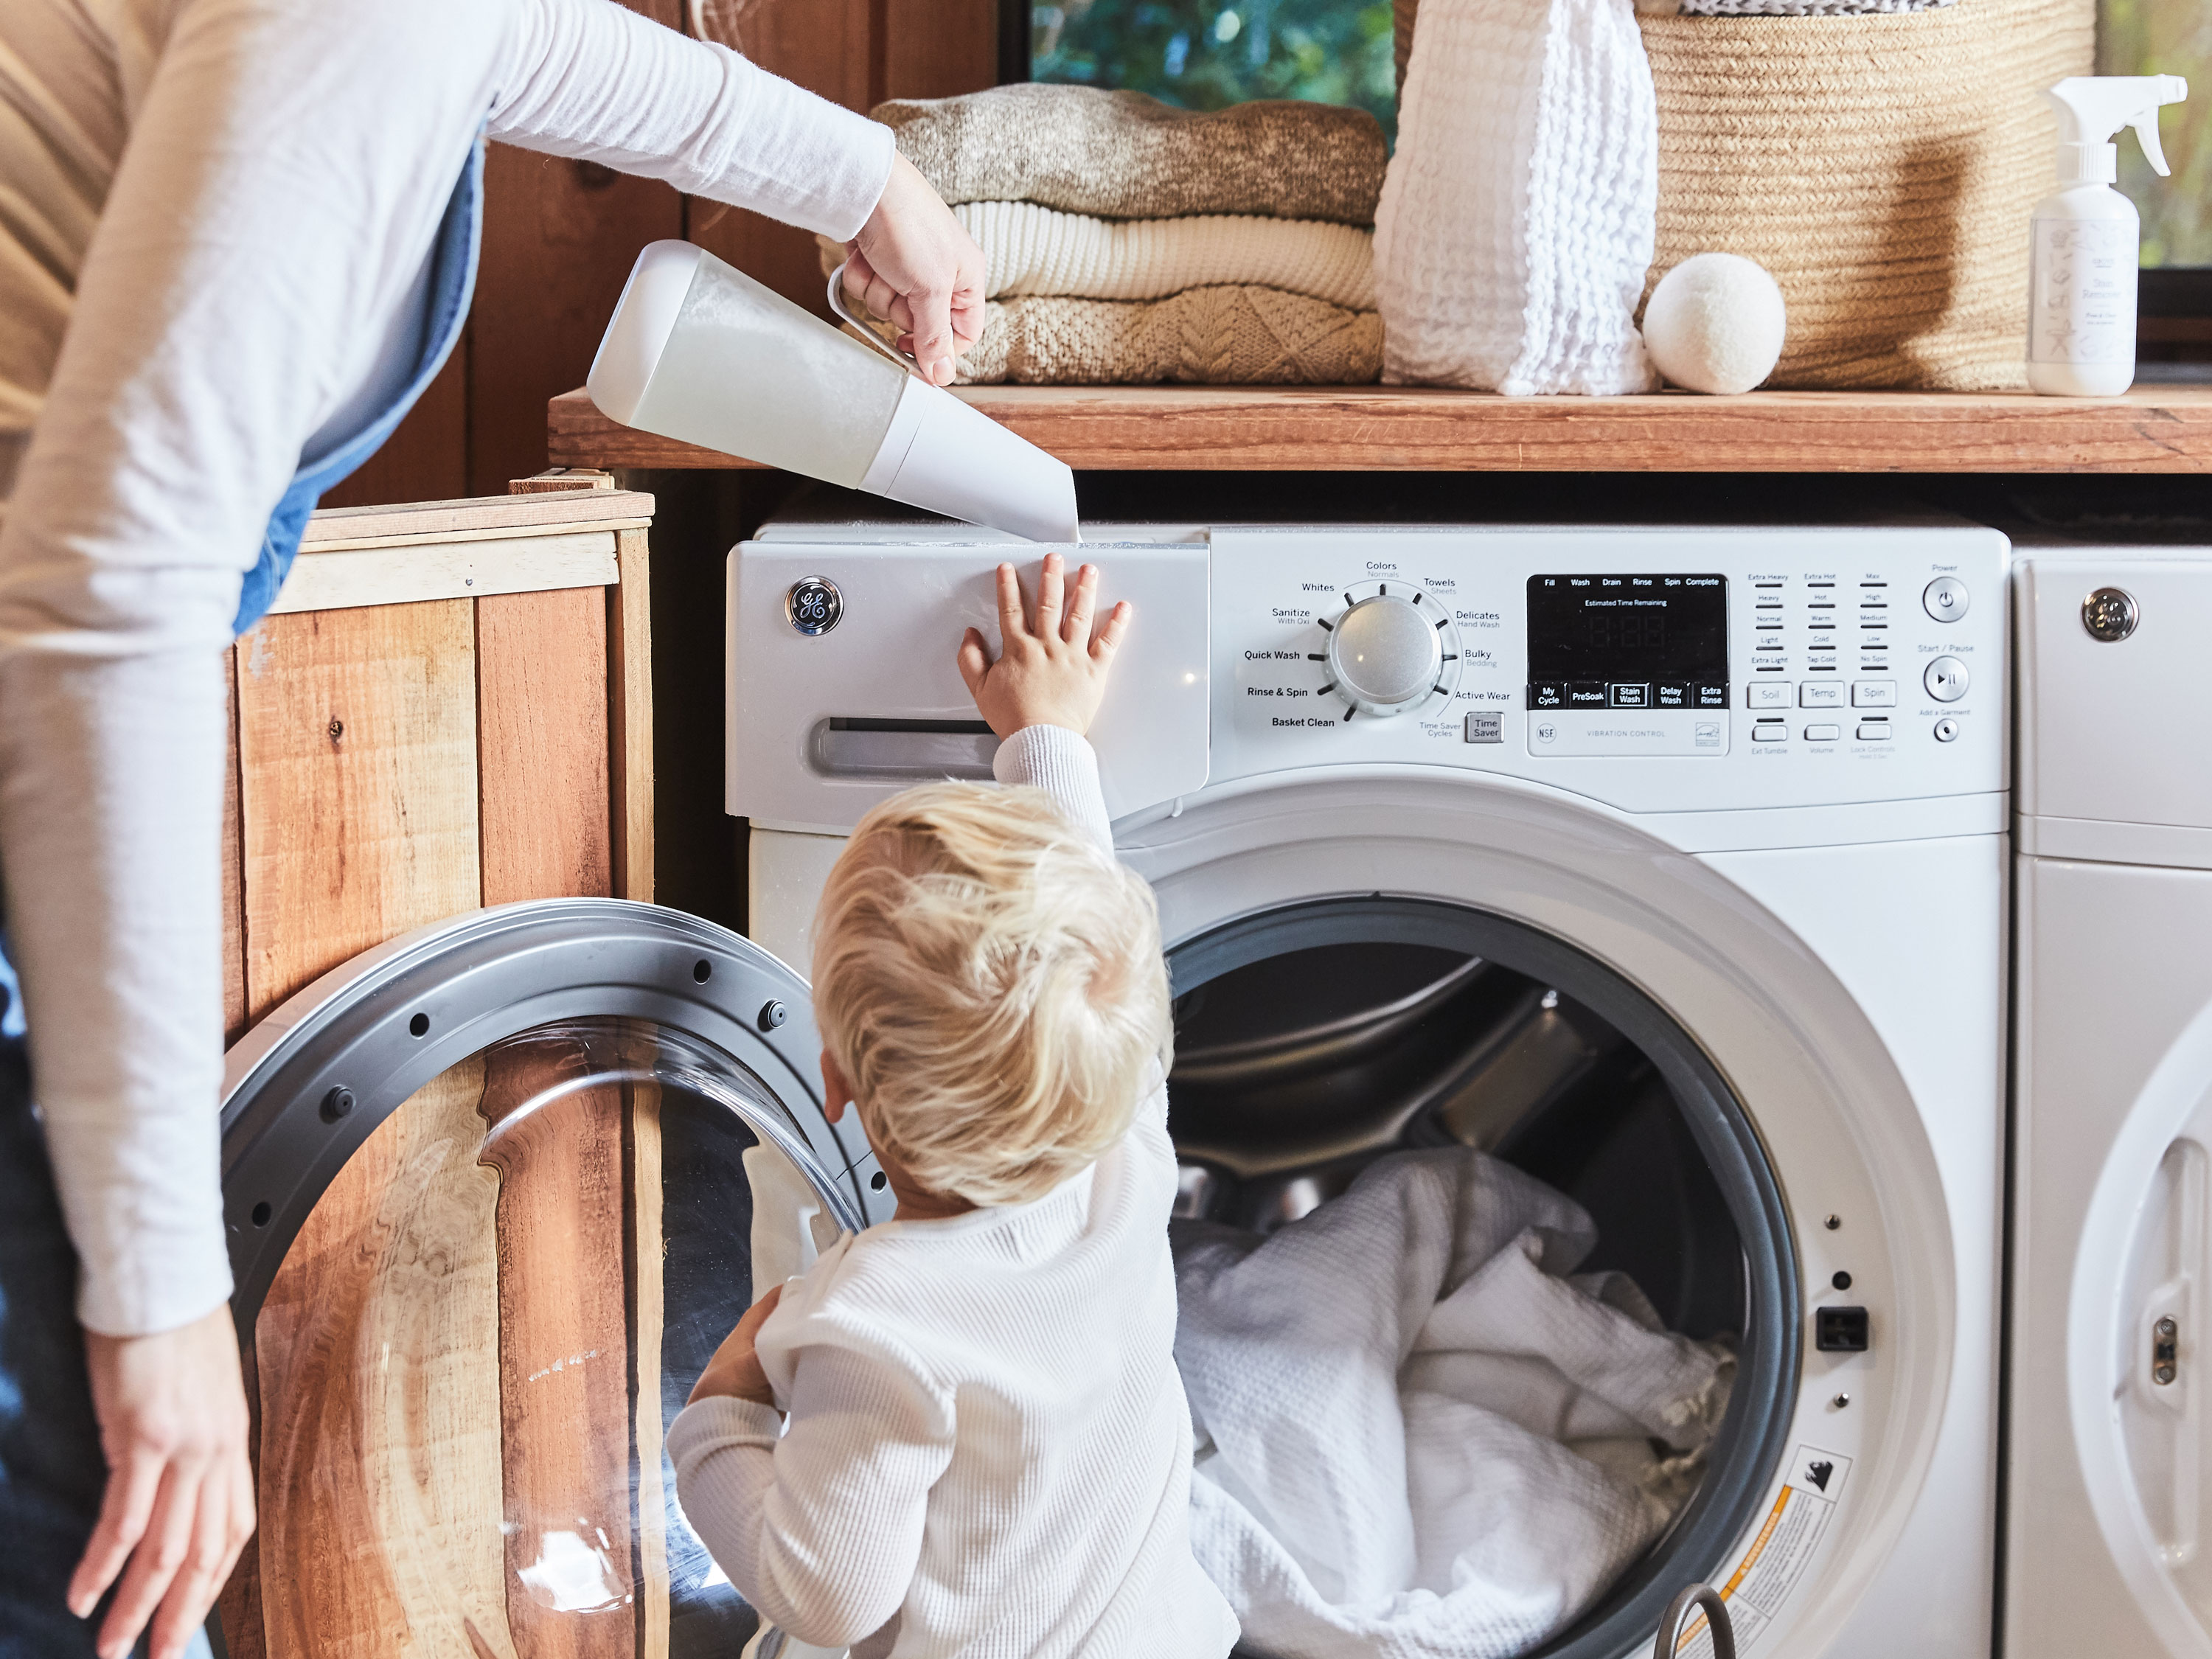 Parent holding child's hand while they watch clothes spin in the dryer